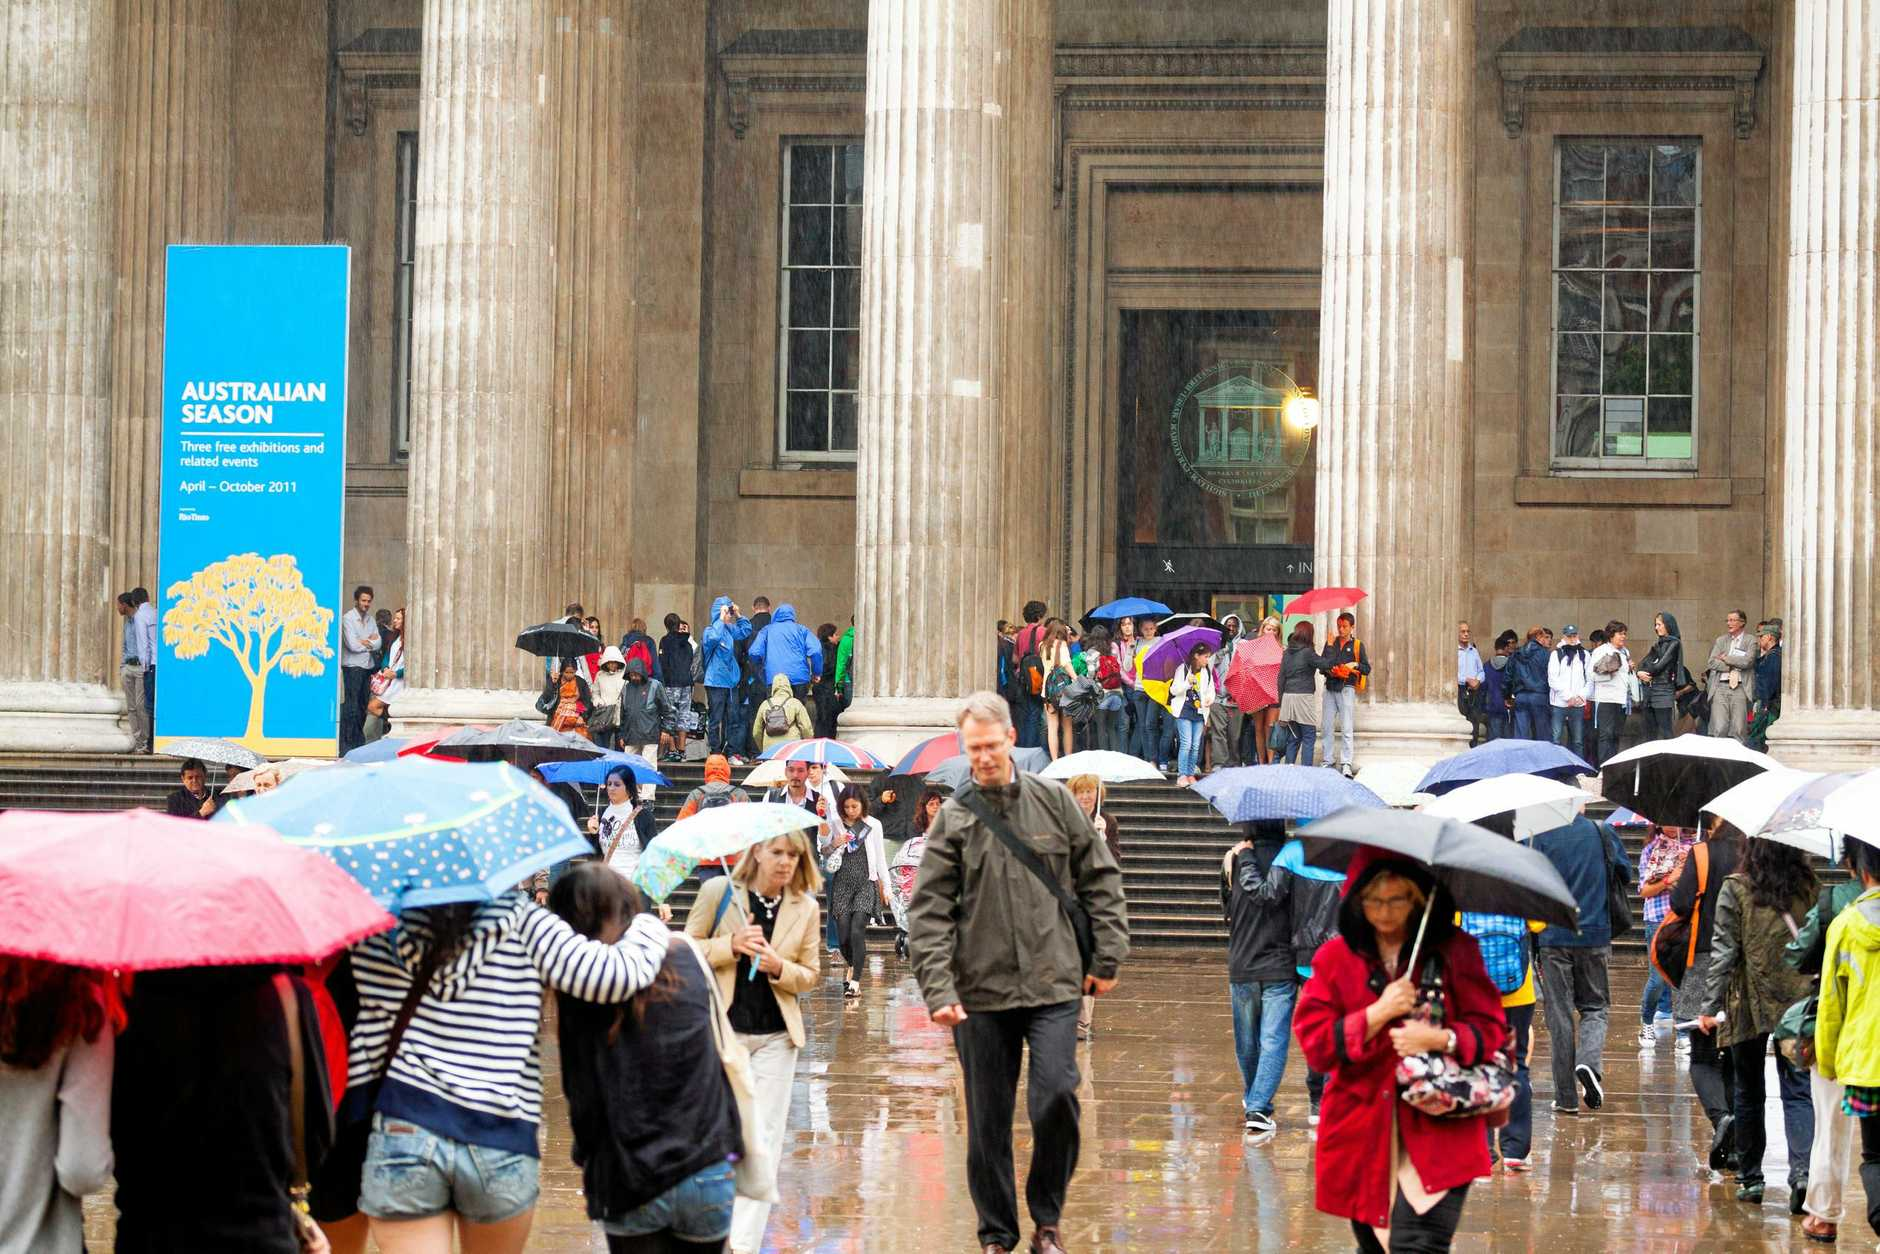 Tourists flock to the British Museum on a rainy day.